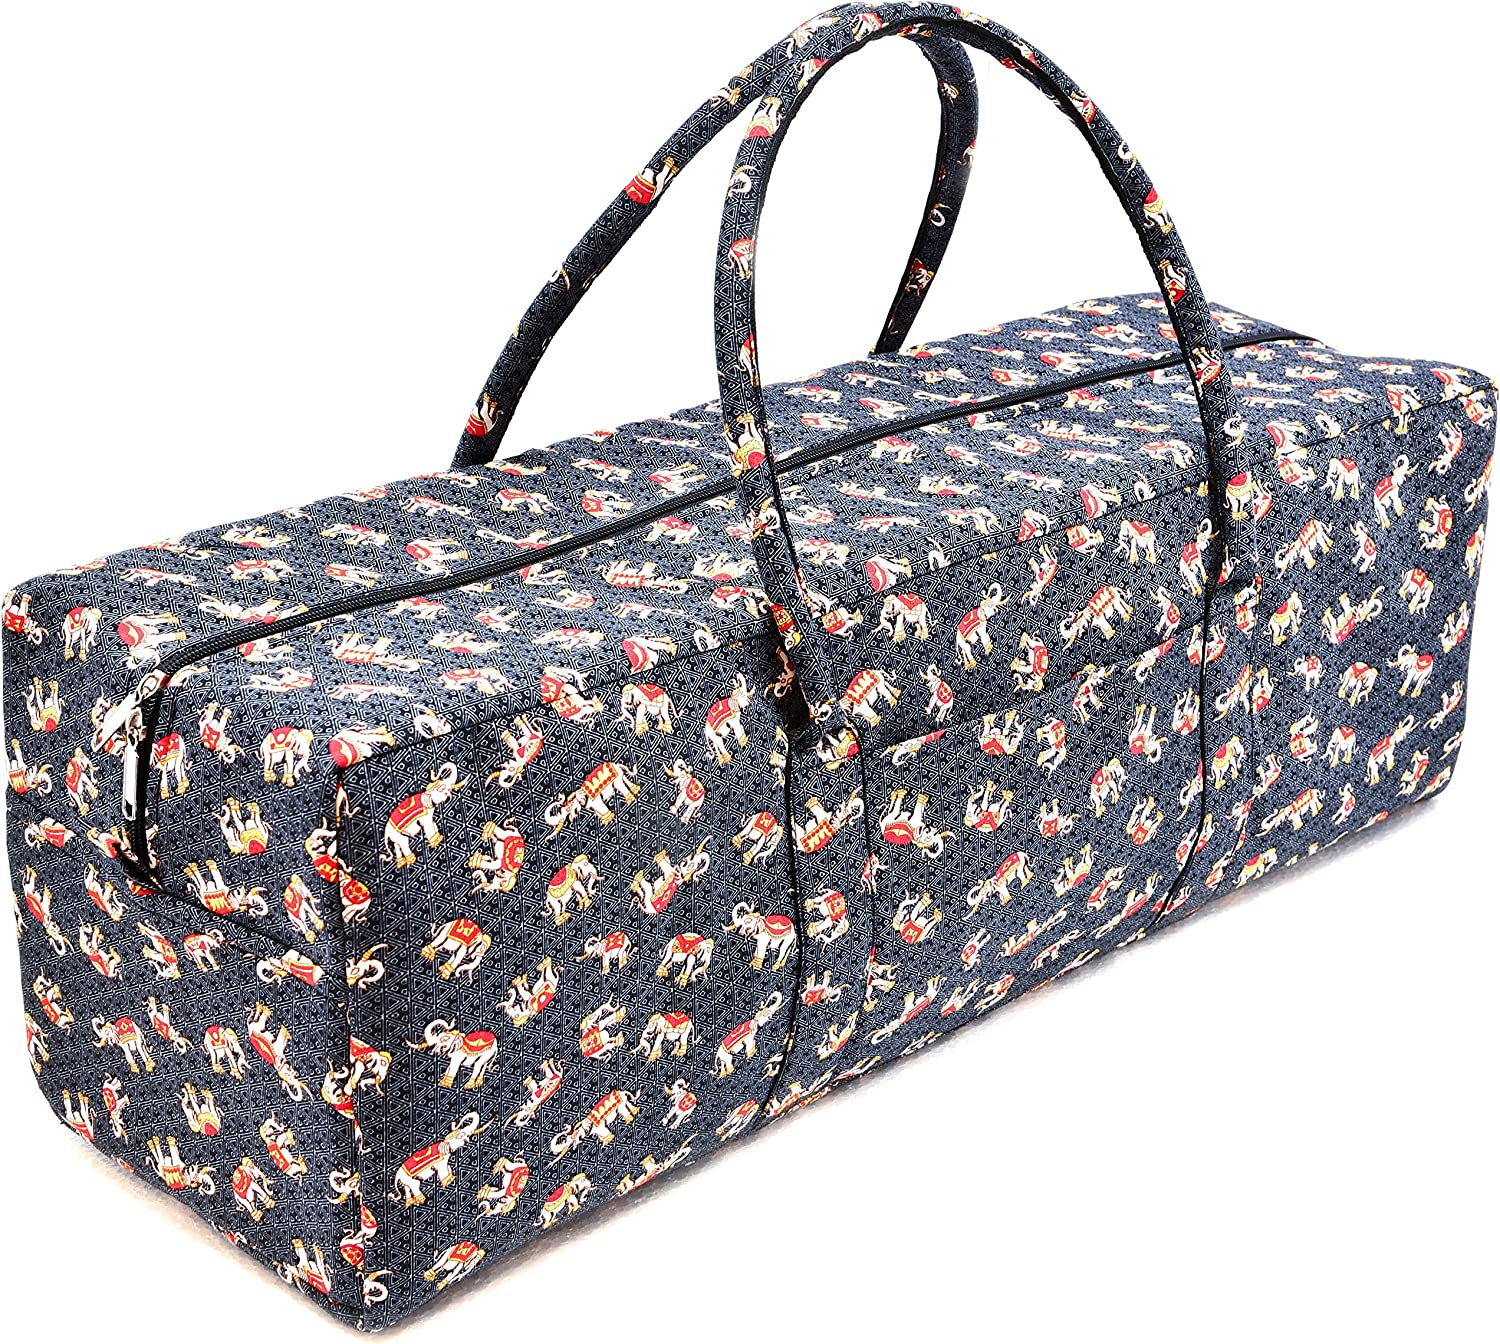 vvProud Large Yoga Mat Duffle Tote Bags Patterned Cotton with Pocket and Zipper for Men and Women, Fits Most Size Yoga Mats